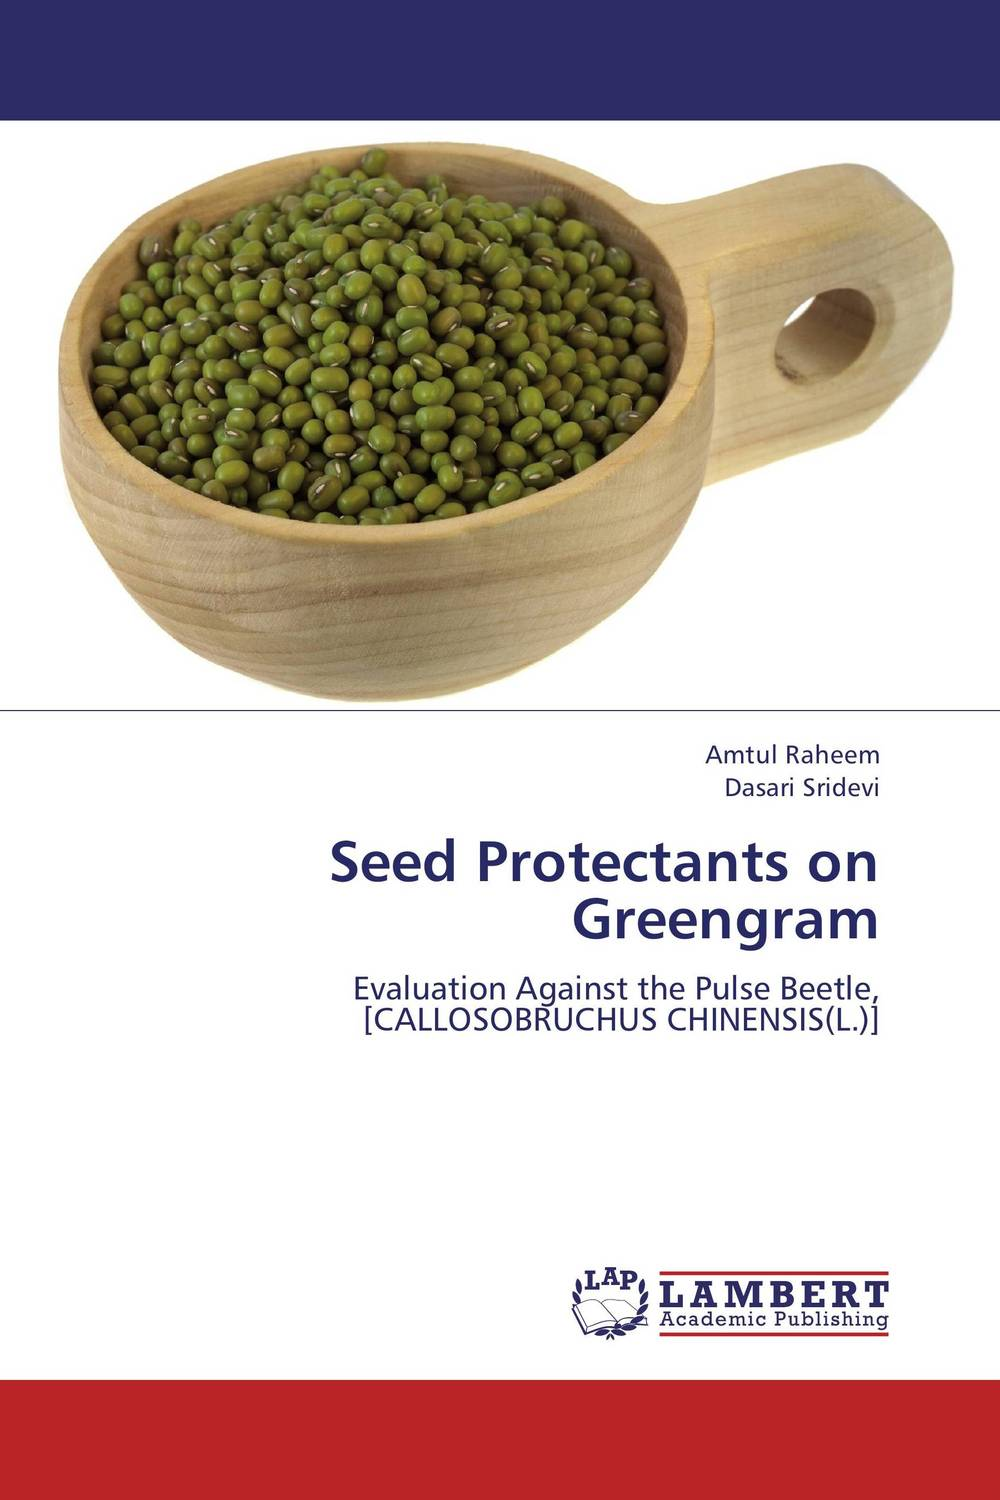 Seed Protectants on Greengram seed dormancy and germination